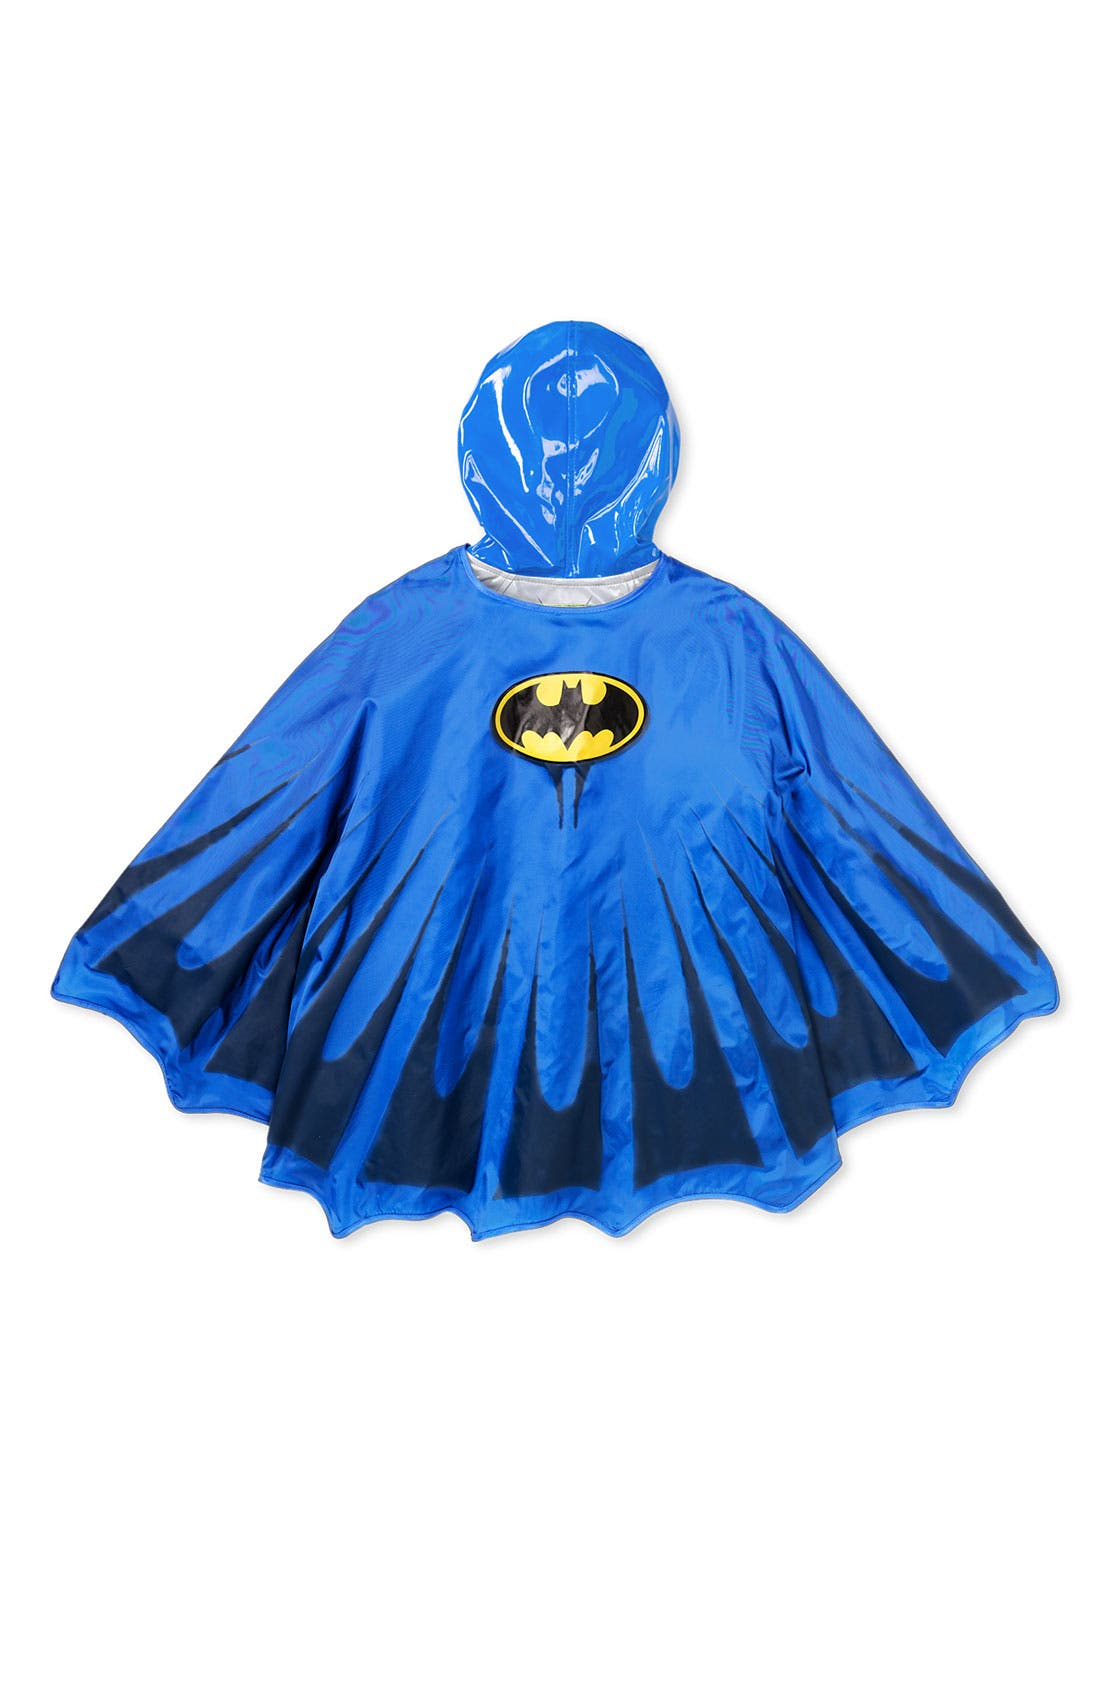 Alternate Image 2  - Western Chief 'Batman' Raincoat (Toddler Boys & Little Boys)